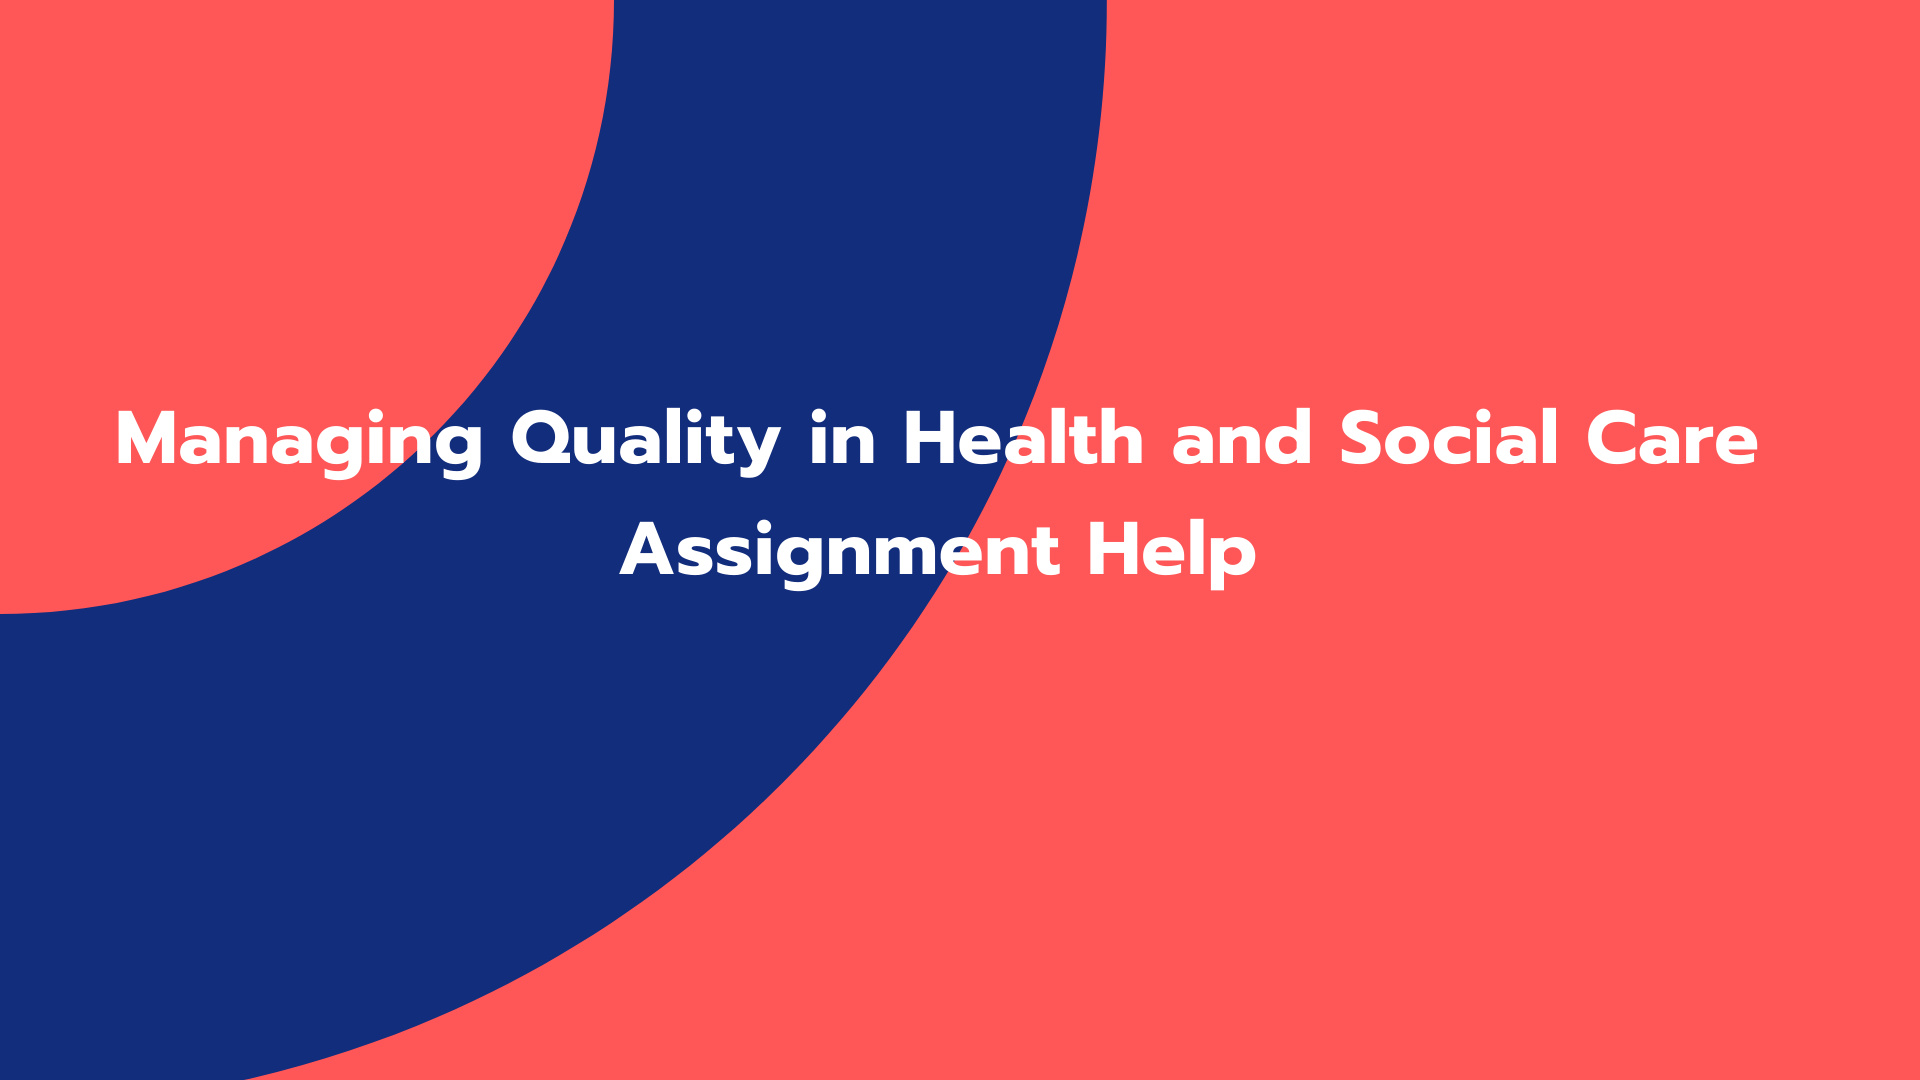 Managing Quality in Health and Social Care Assignment Help